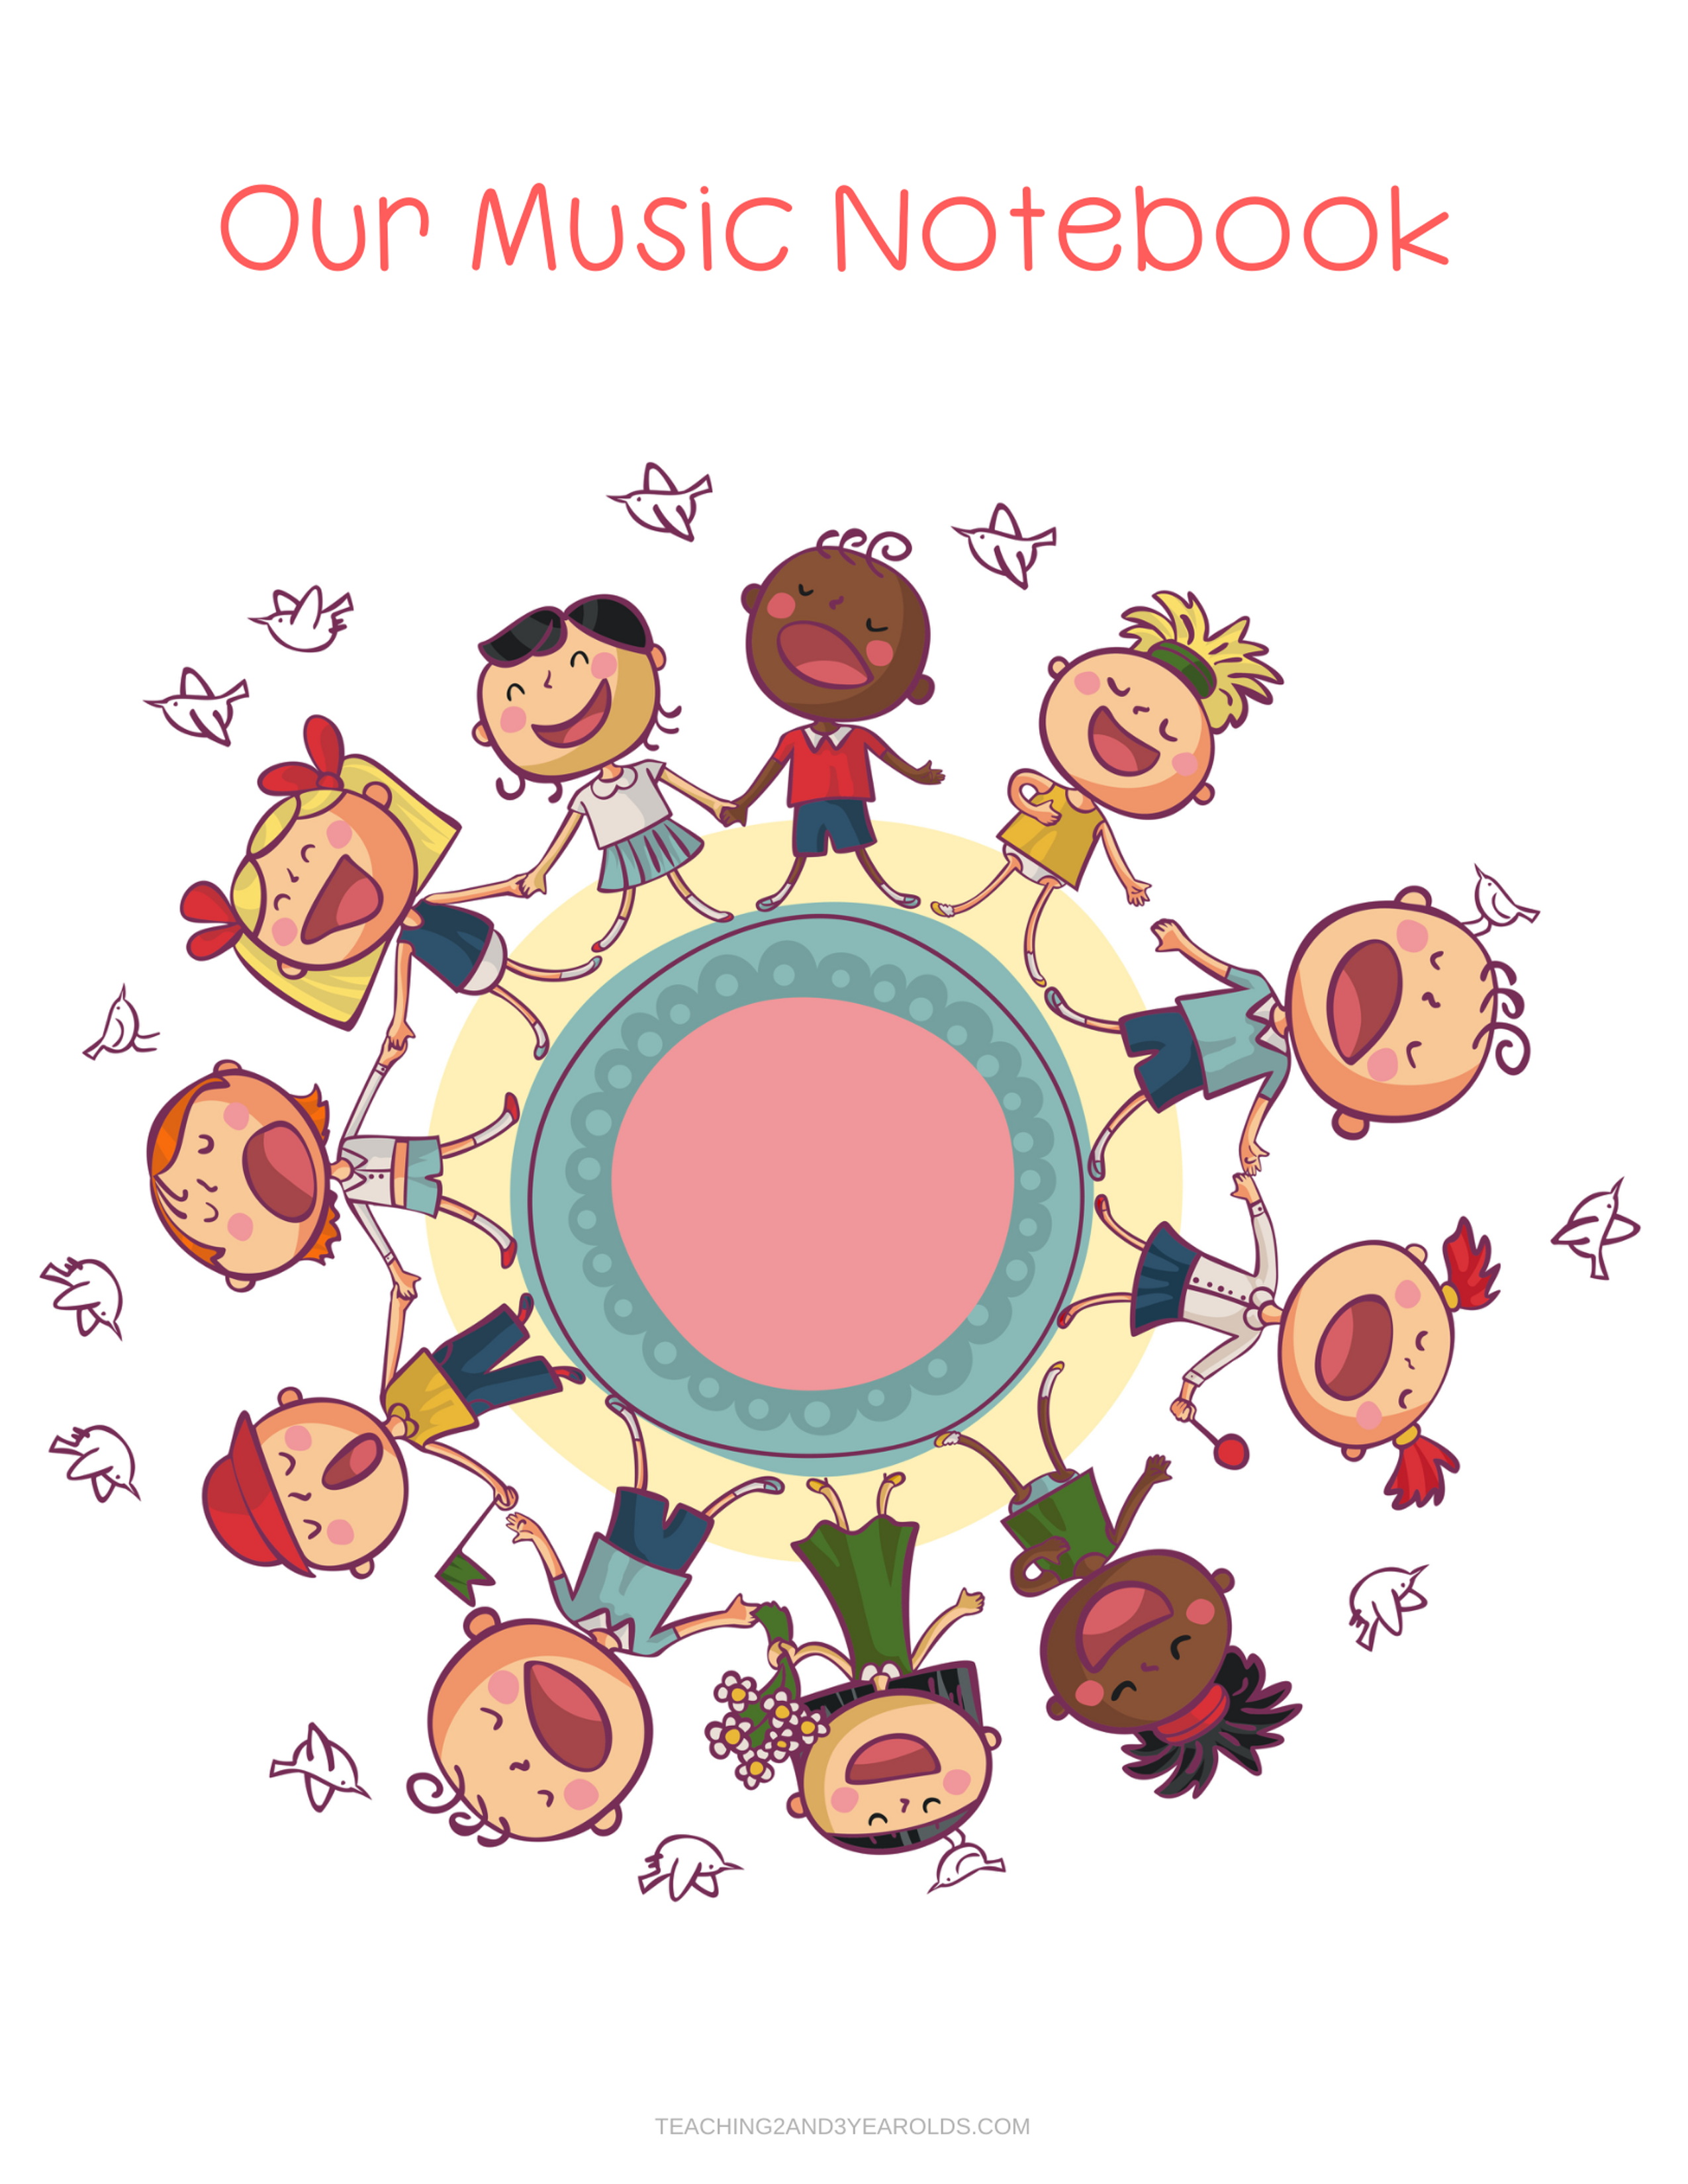 Music For Energetic Kids Teaching 2 And 3 Year Olds